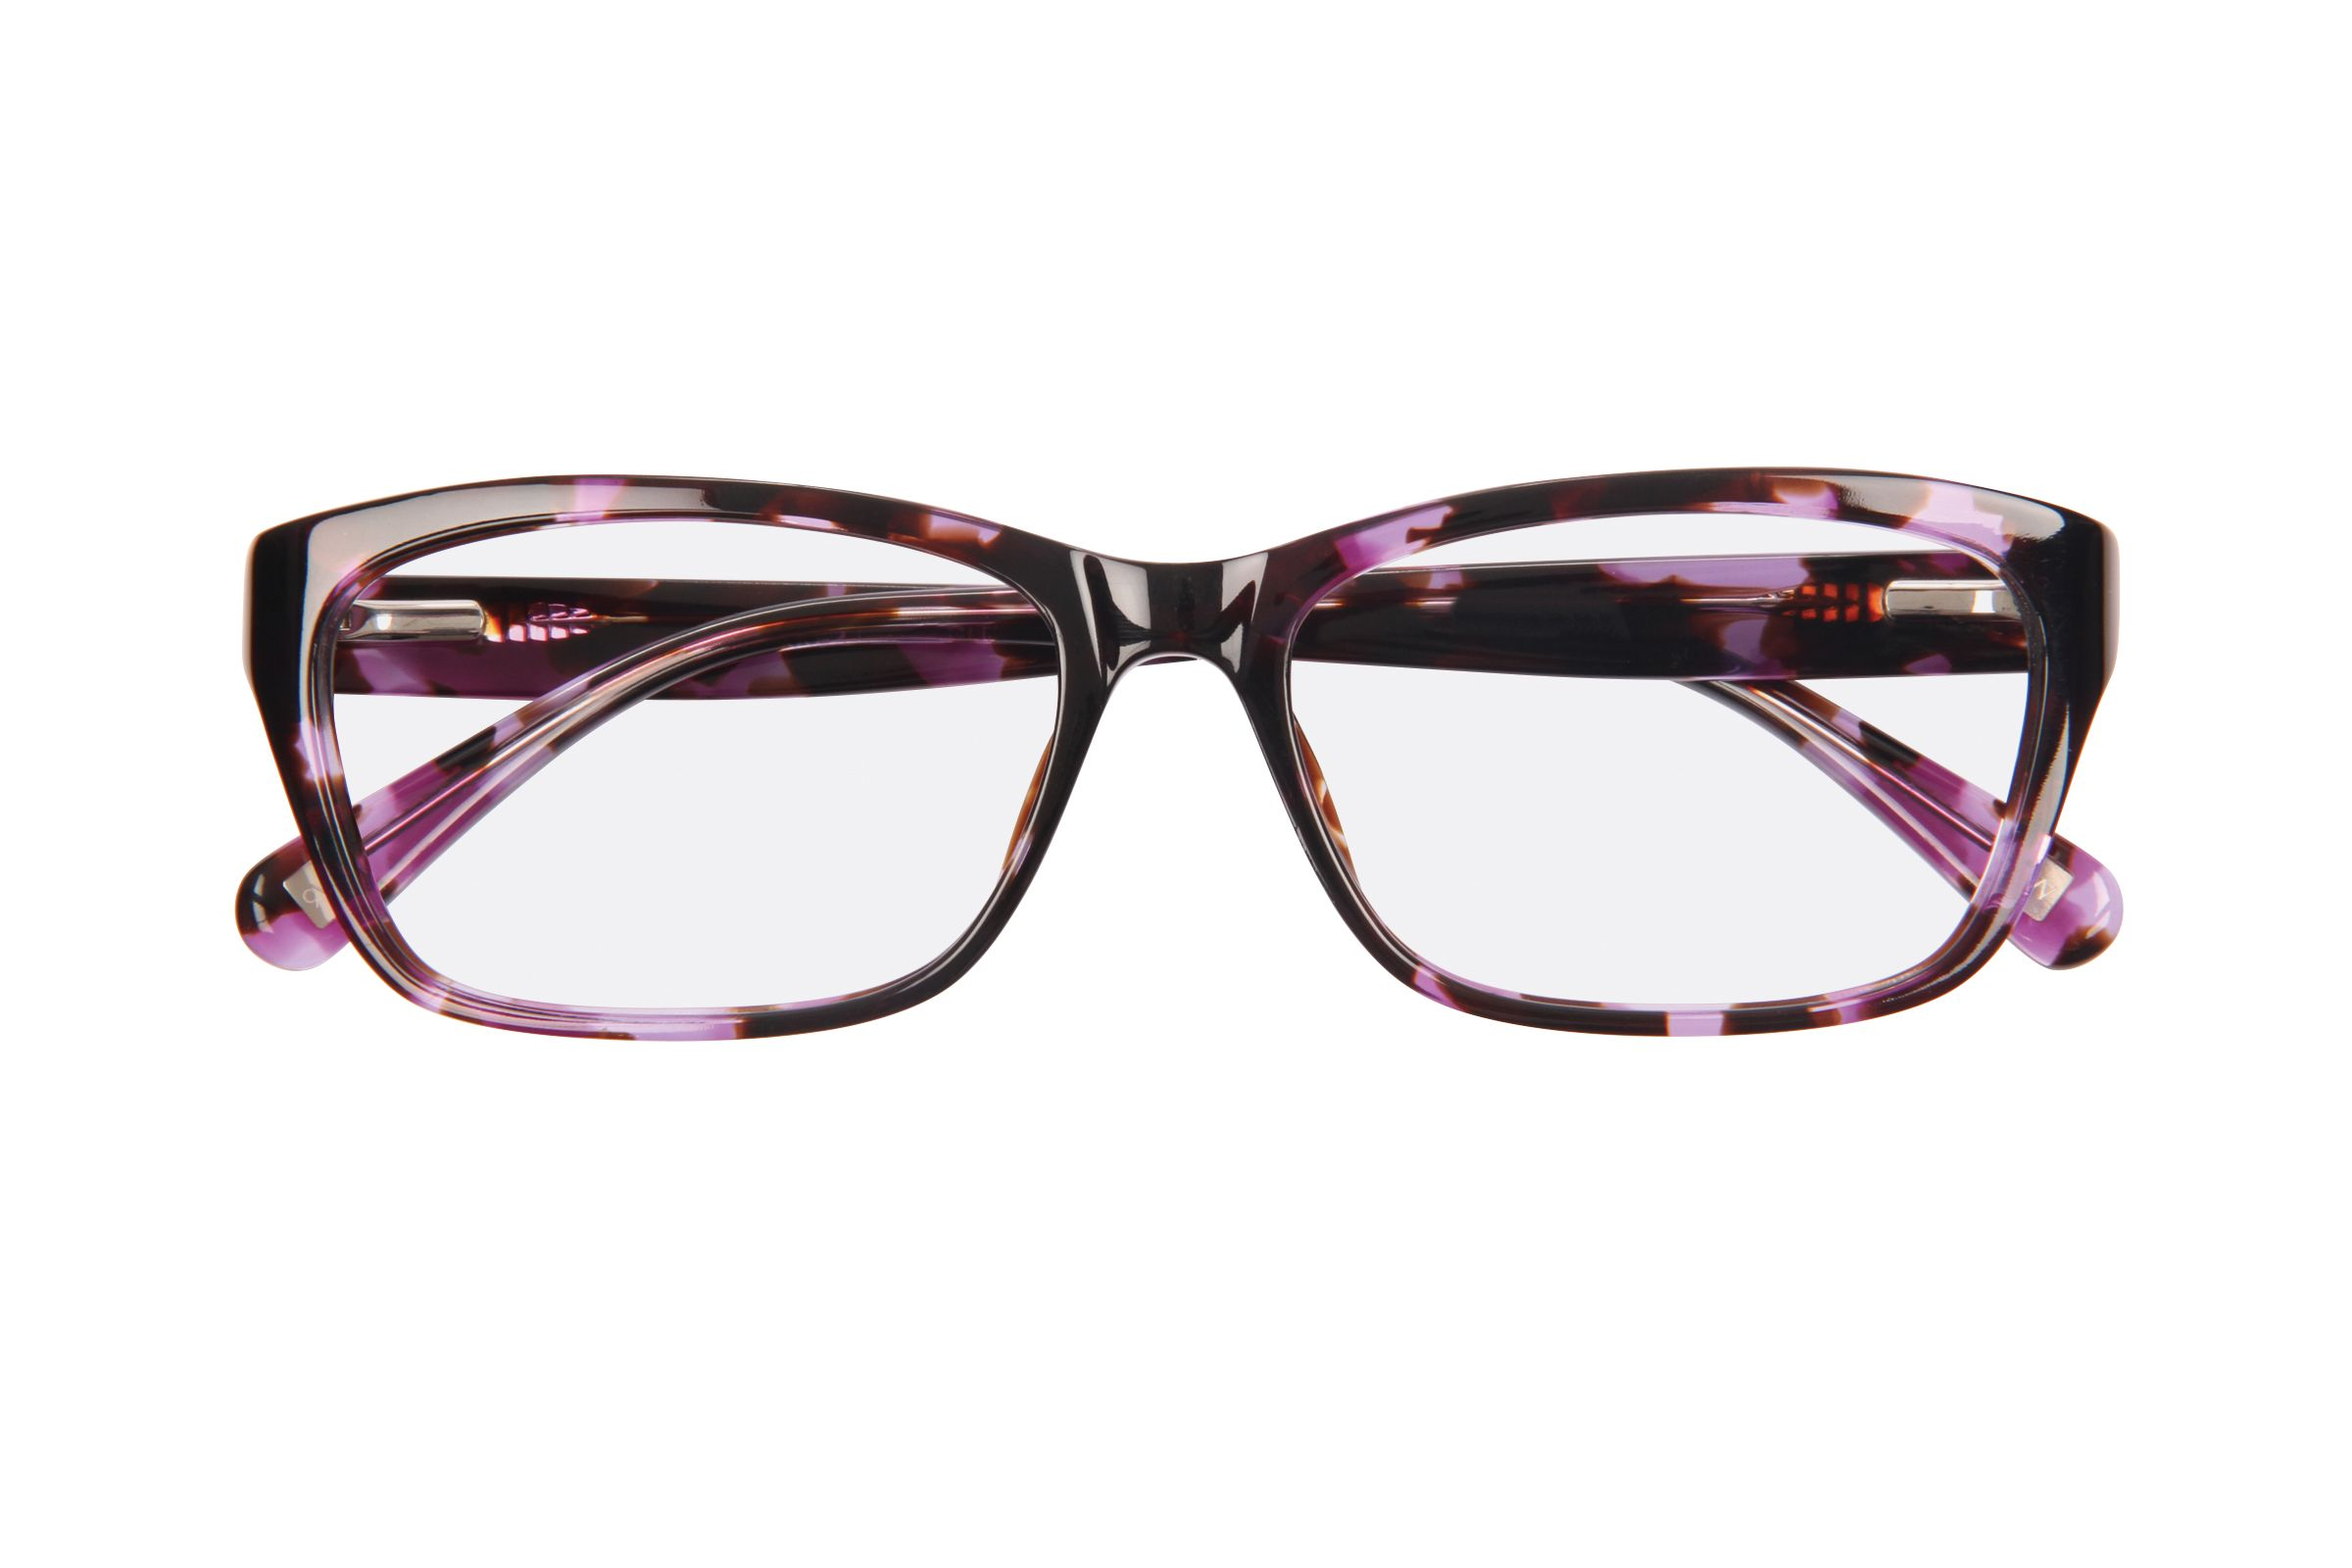 d6218b134f The New Nine West Collection Eyewear Trends